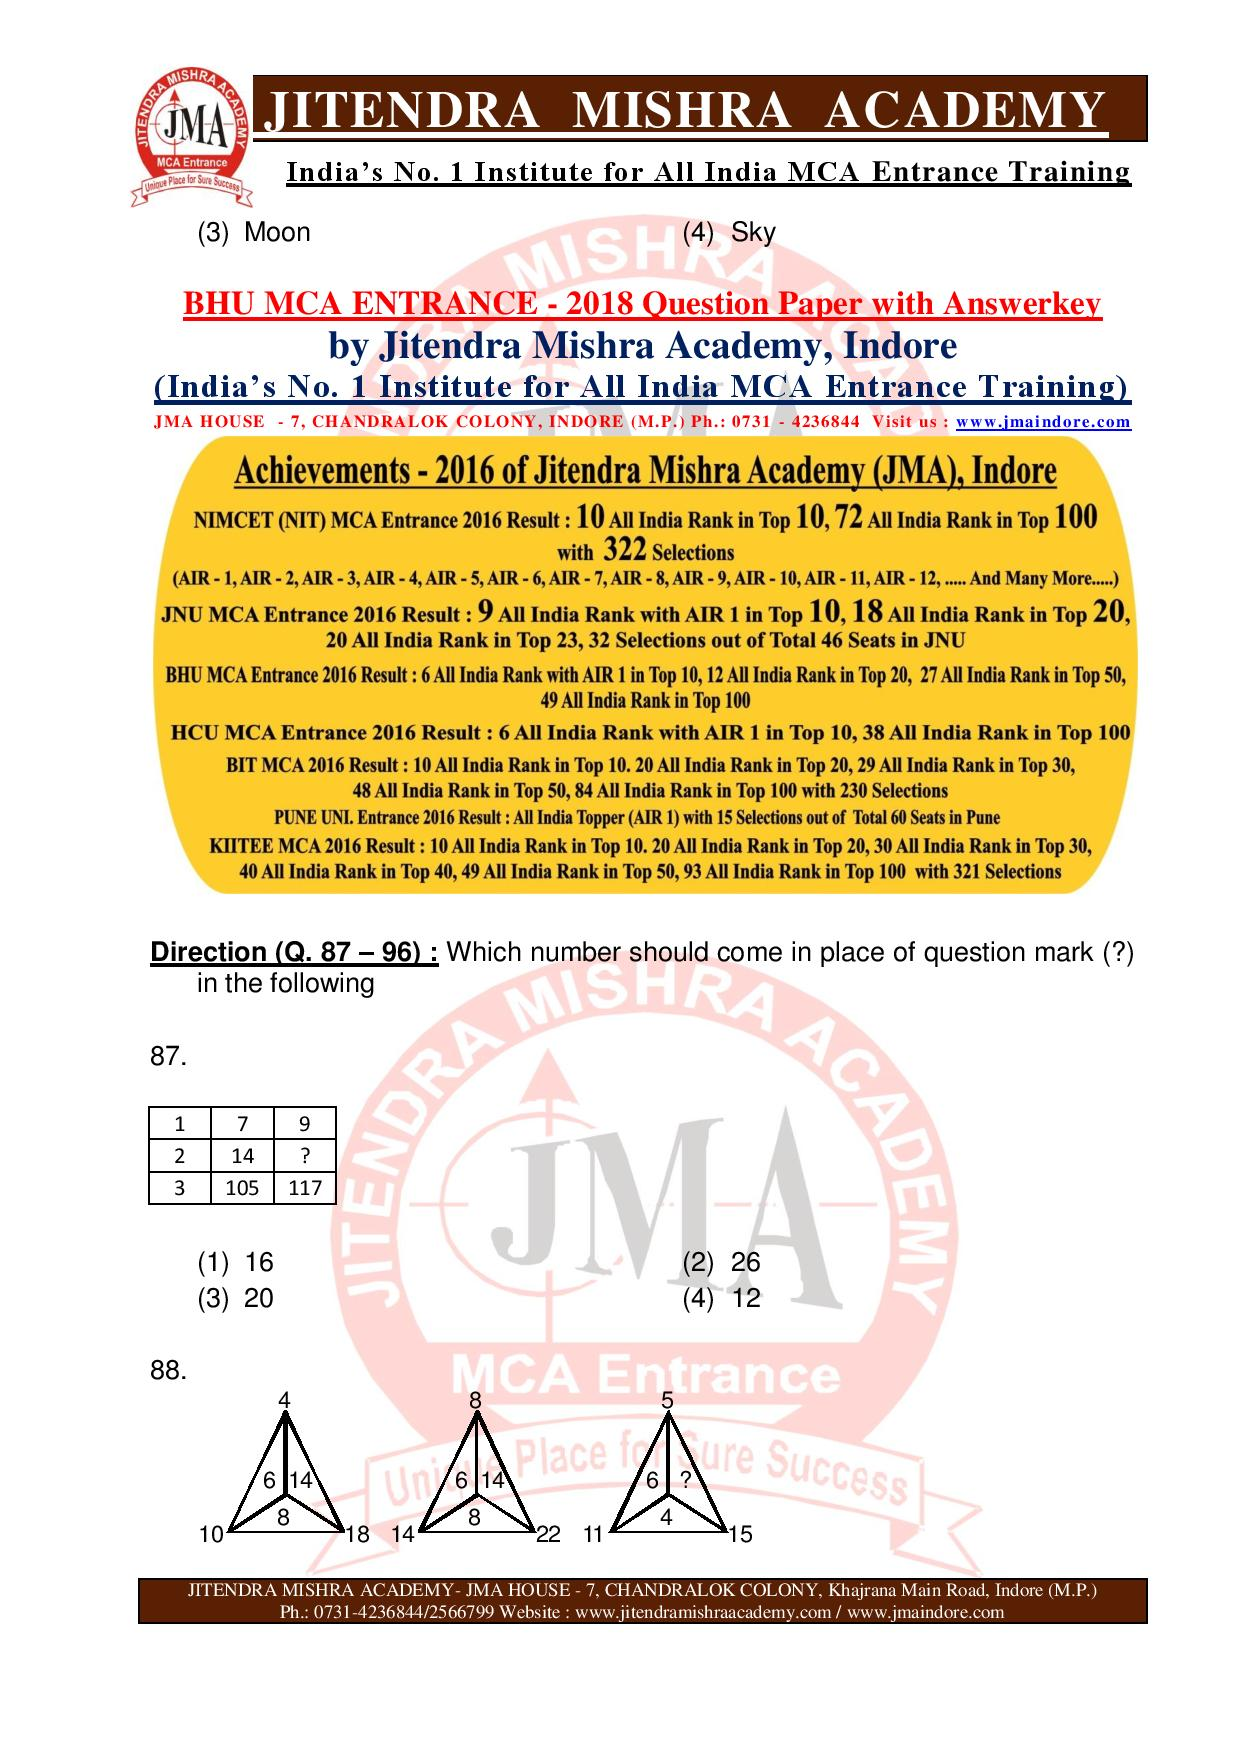 BHU MCA 2018 QUESTION PAPER12-page-026